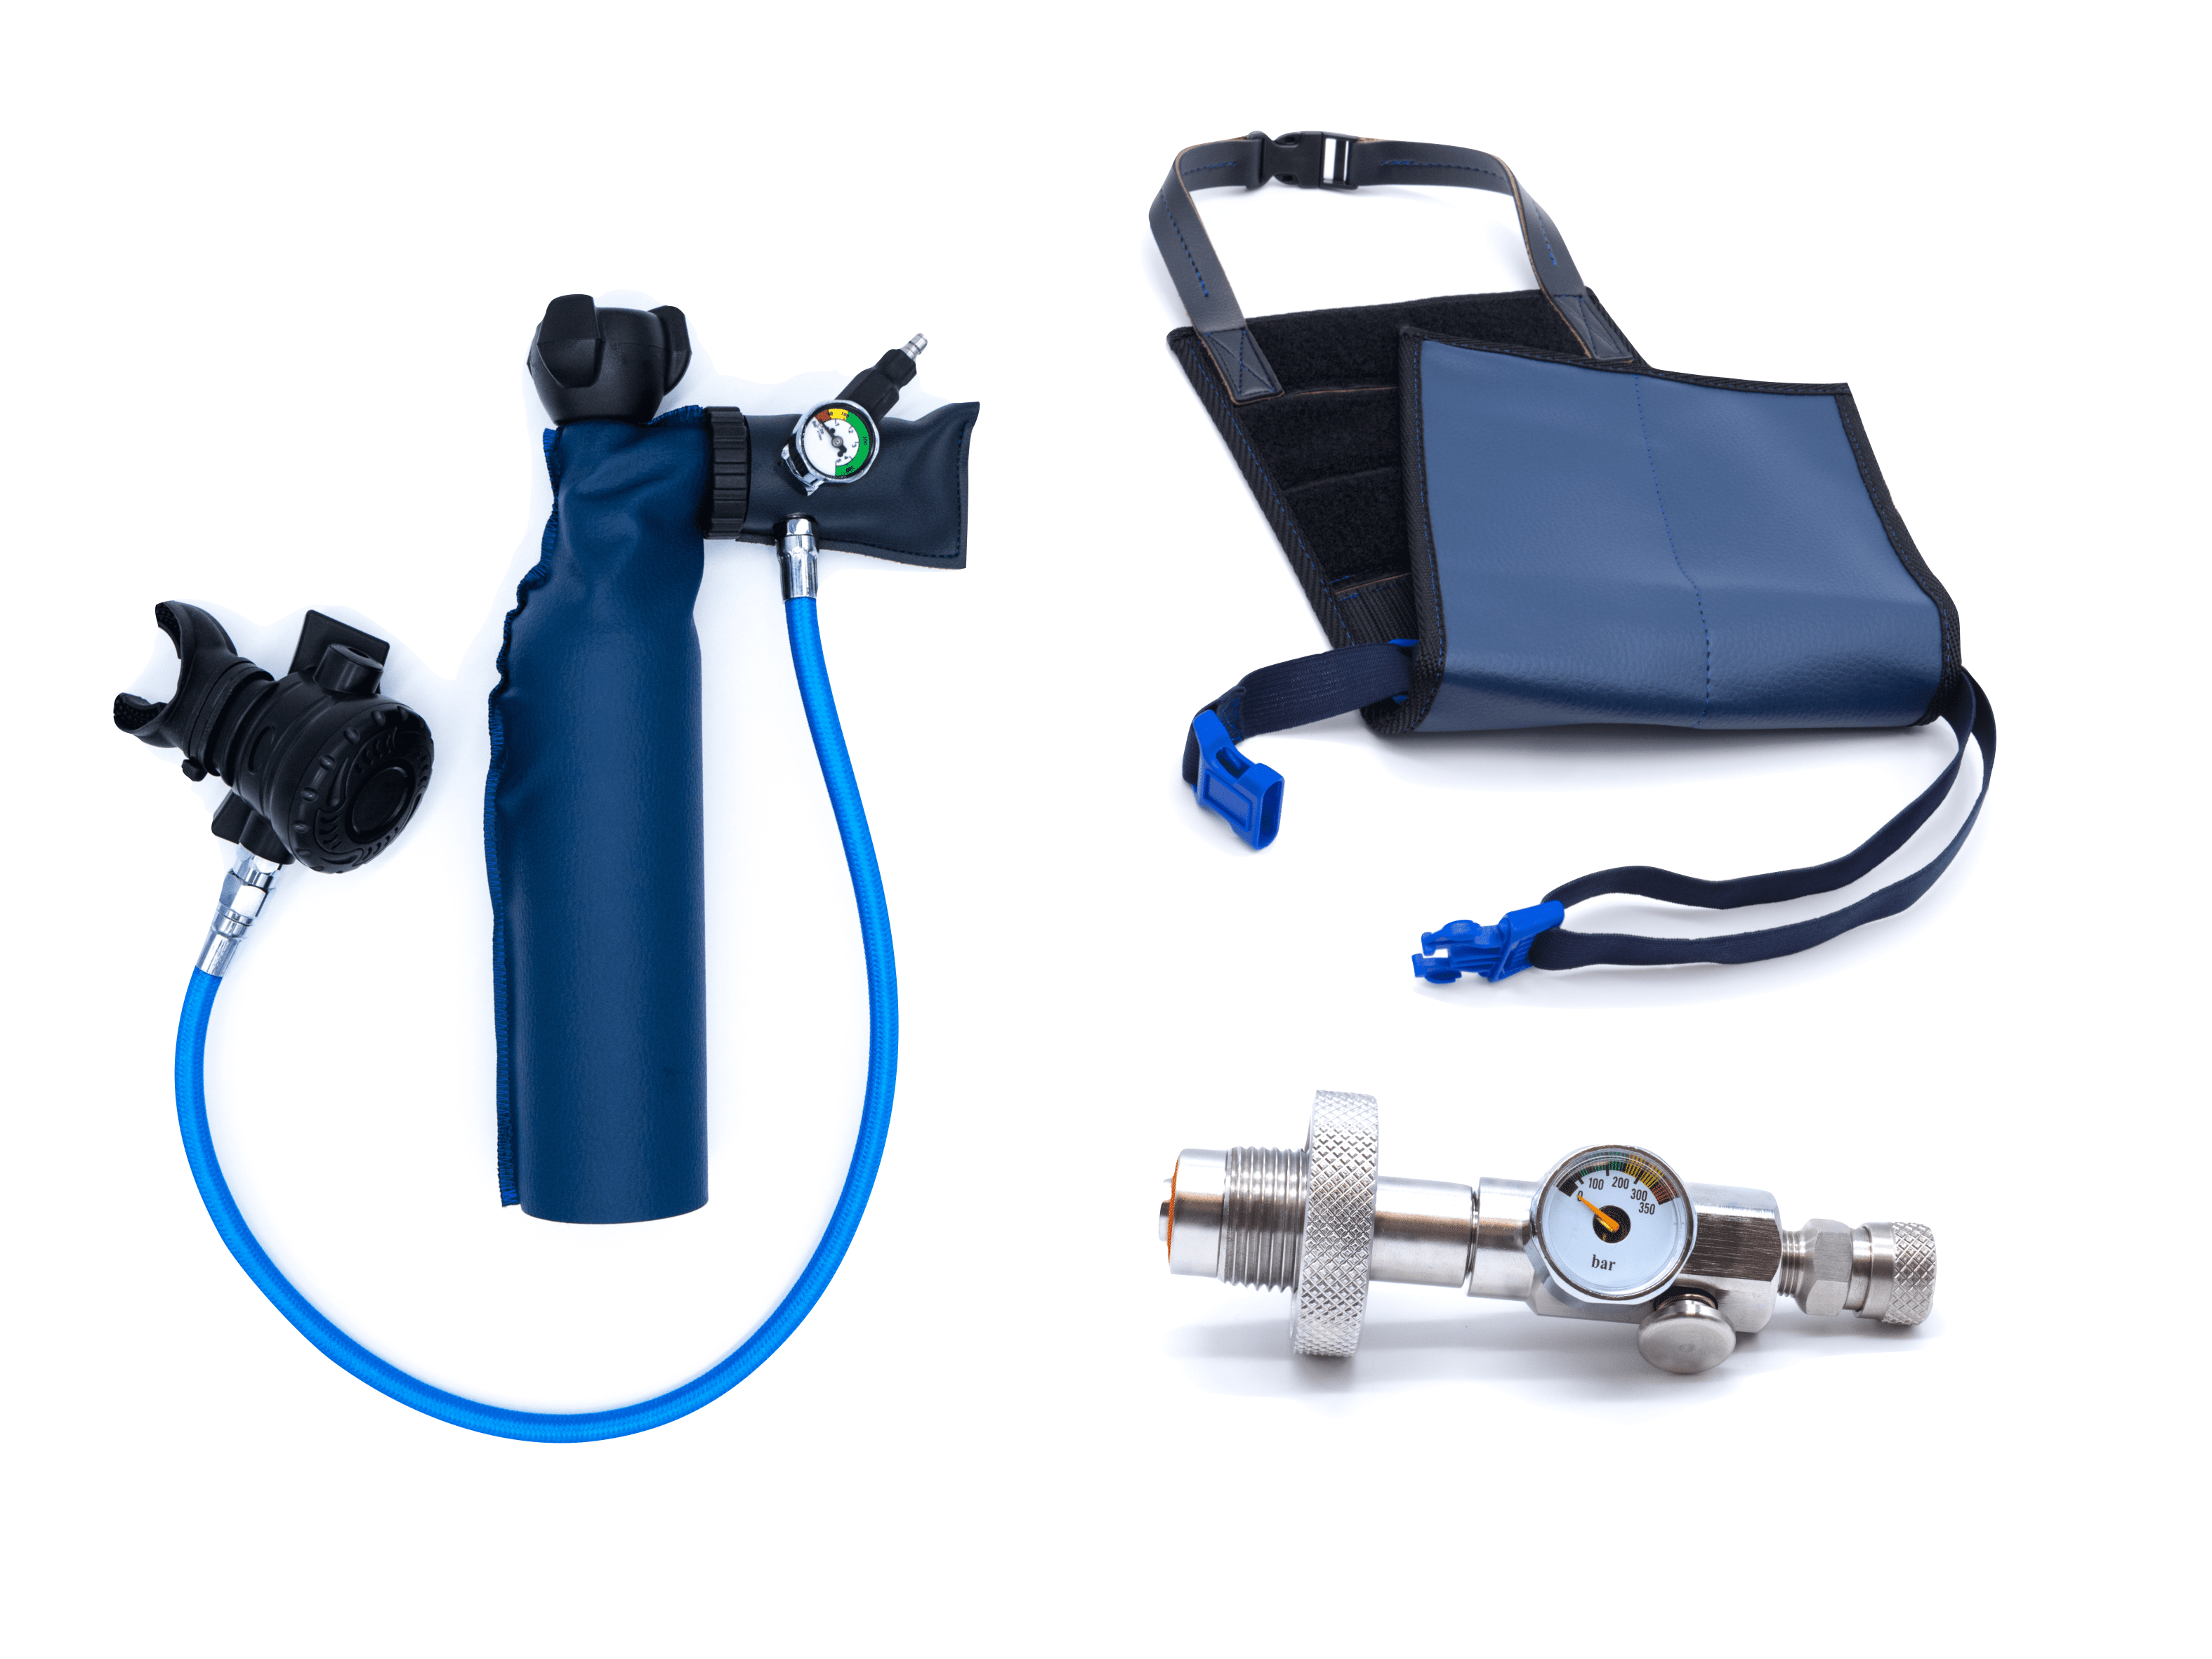 Pro 0 5 L 30 Cu In Din Filling Station Harness With Images Filling Station Scuba Diving Equipment Packing A Cooler